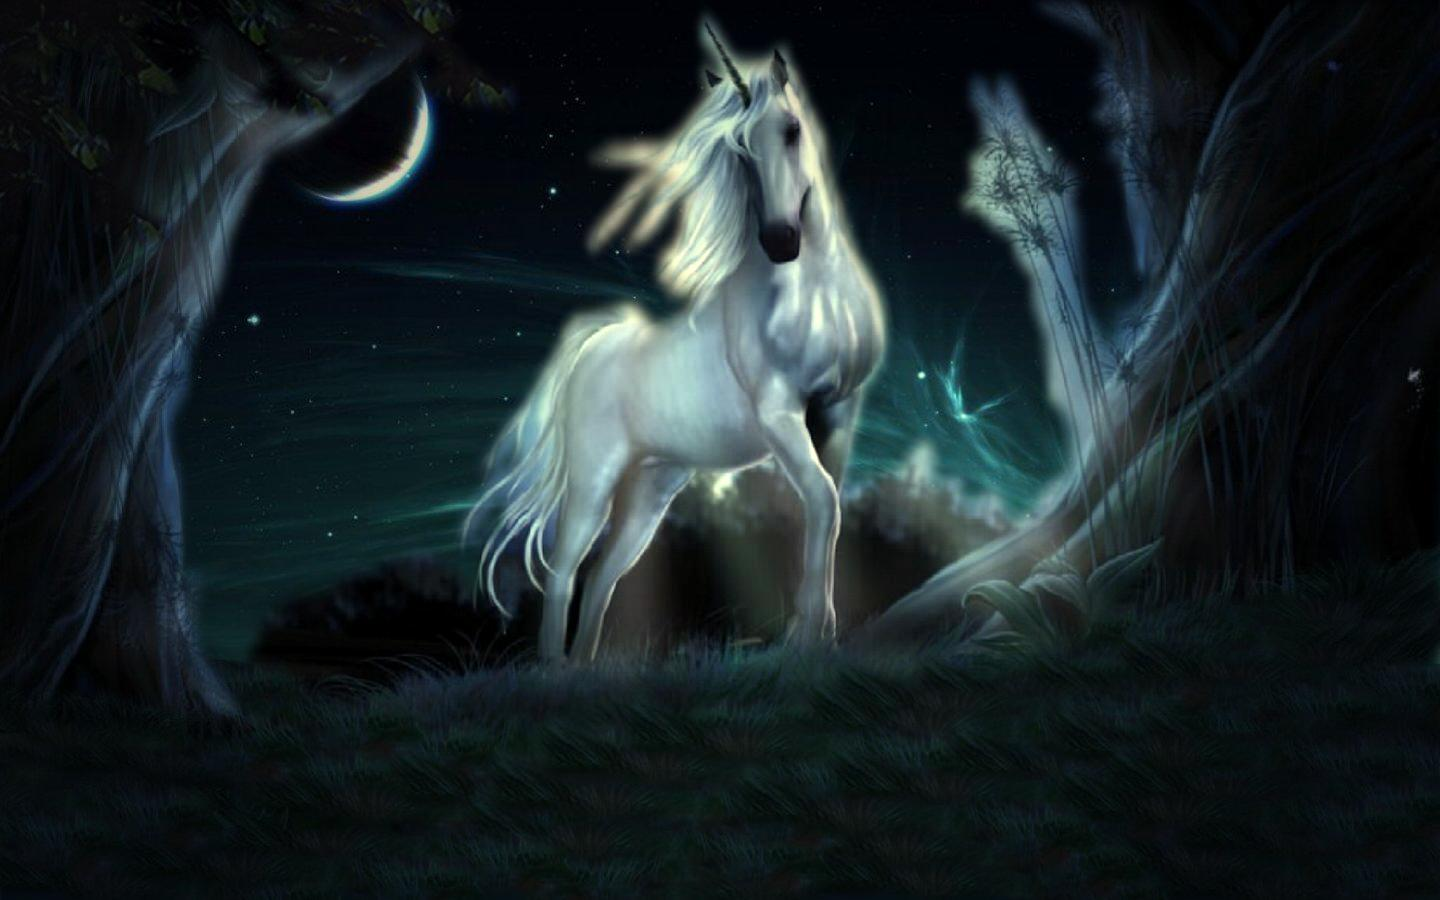 Unicorn hd wallpapers pictures images unicorn hd widescreen wallpaper voltagebd Images